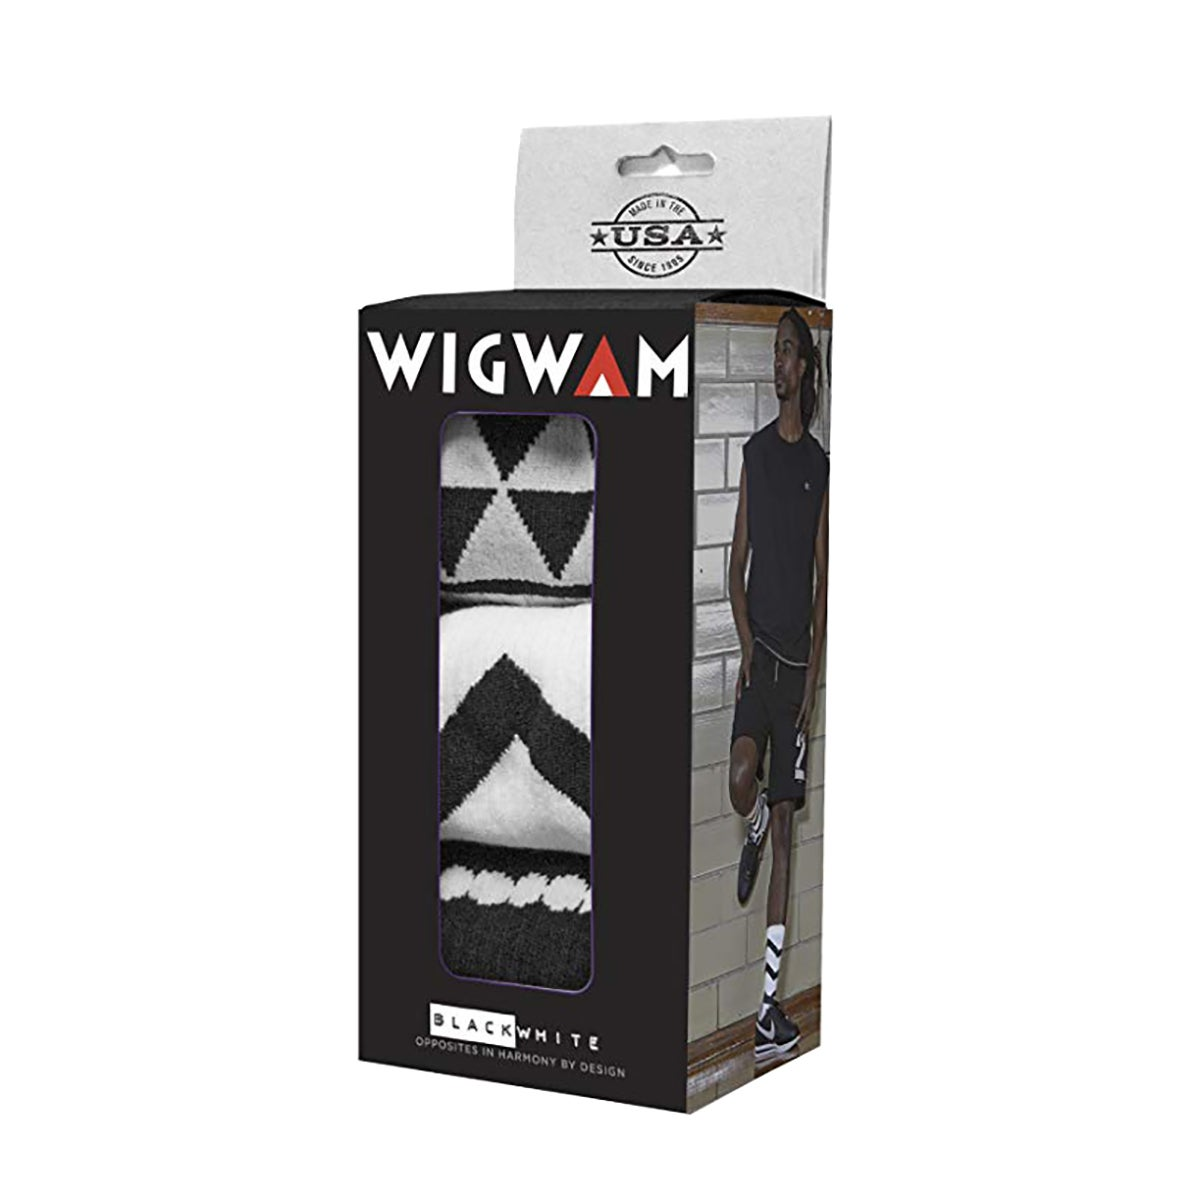 Wigwam Black and White Collection Holiday Gift Box Wandelsokken